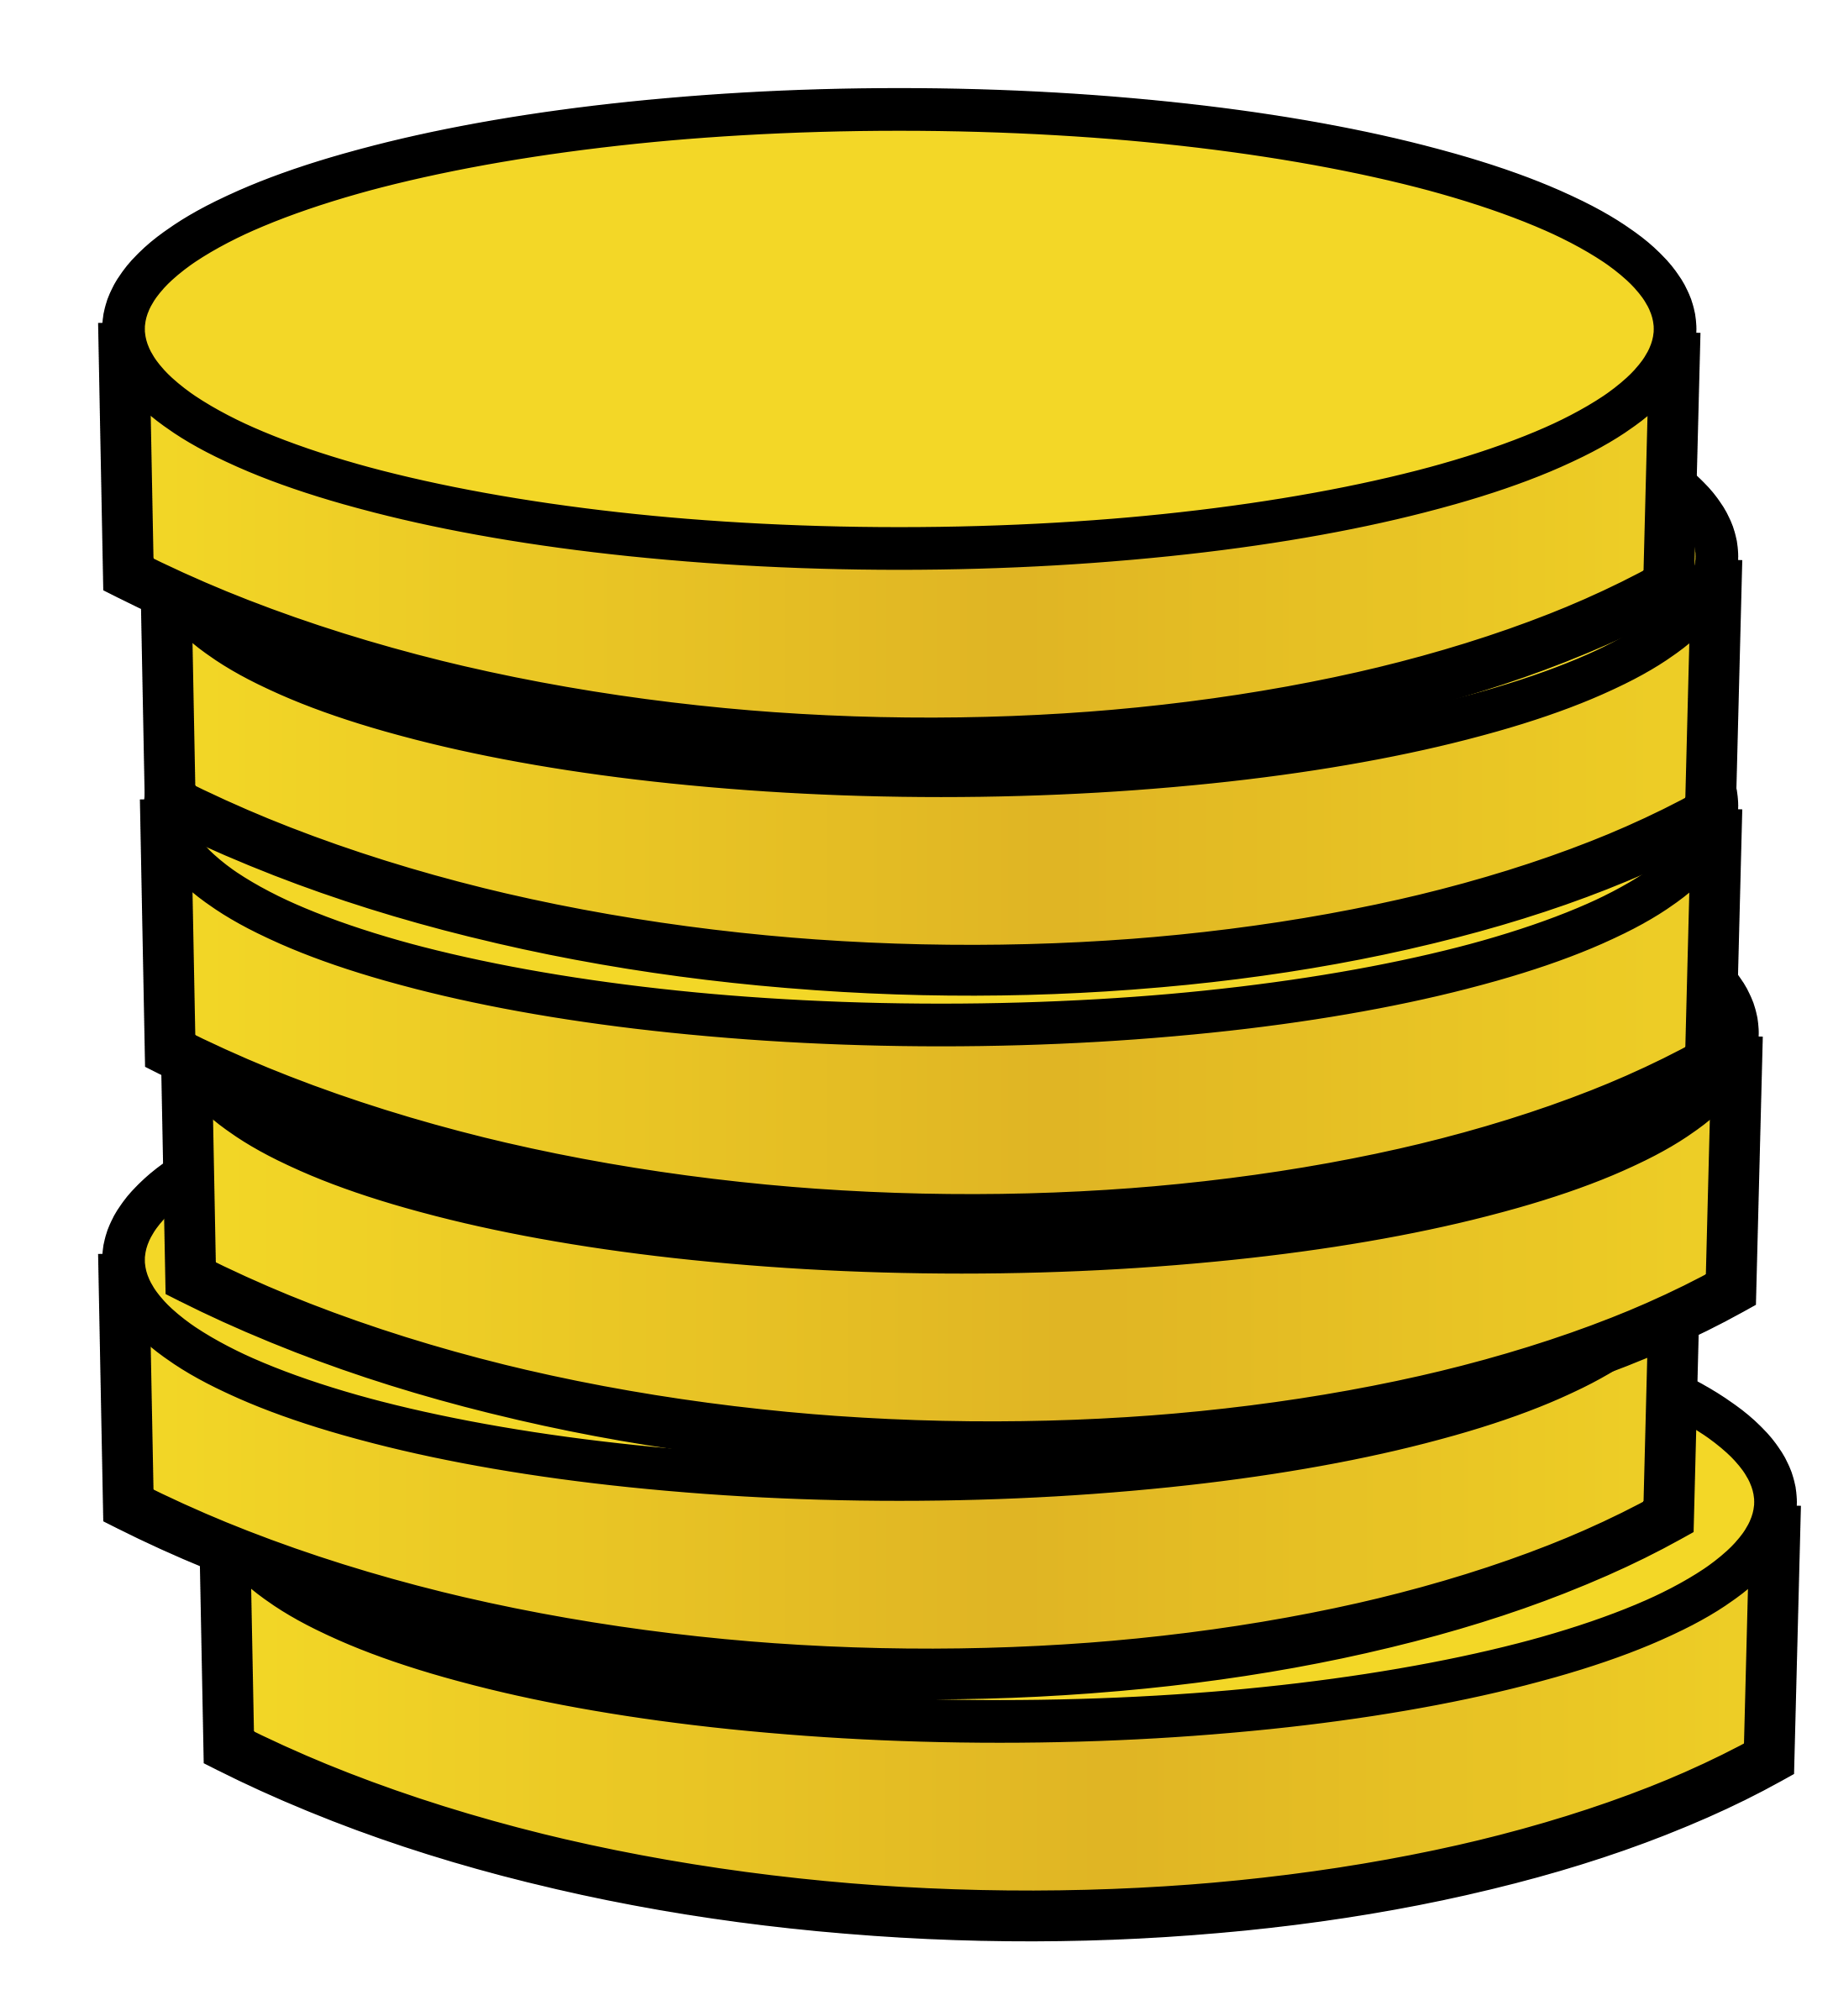 Gold coin Clipart   Clipart Panda - Free Clipart Images (2182 x 2400 Pixel)